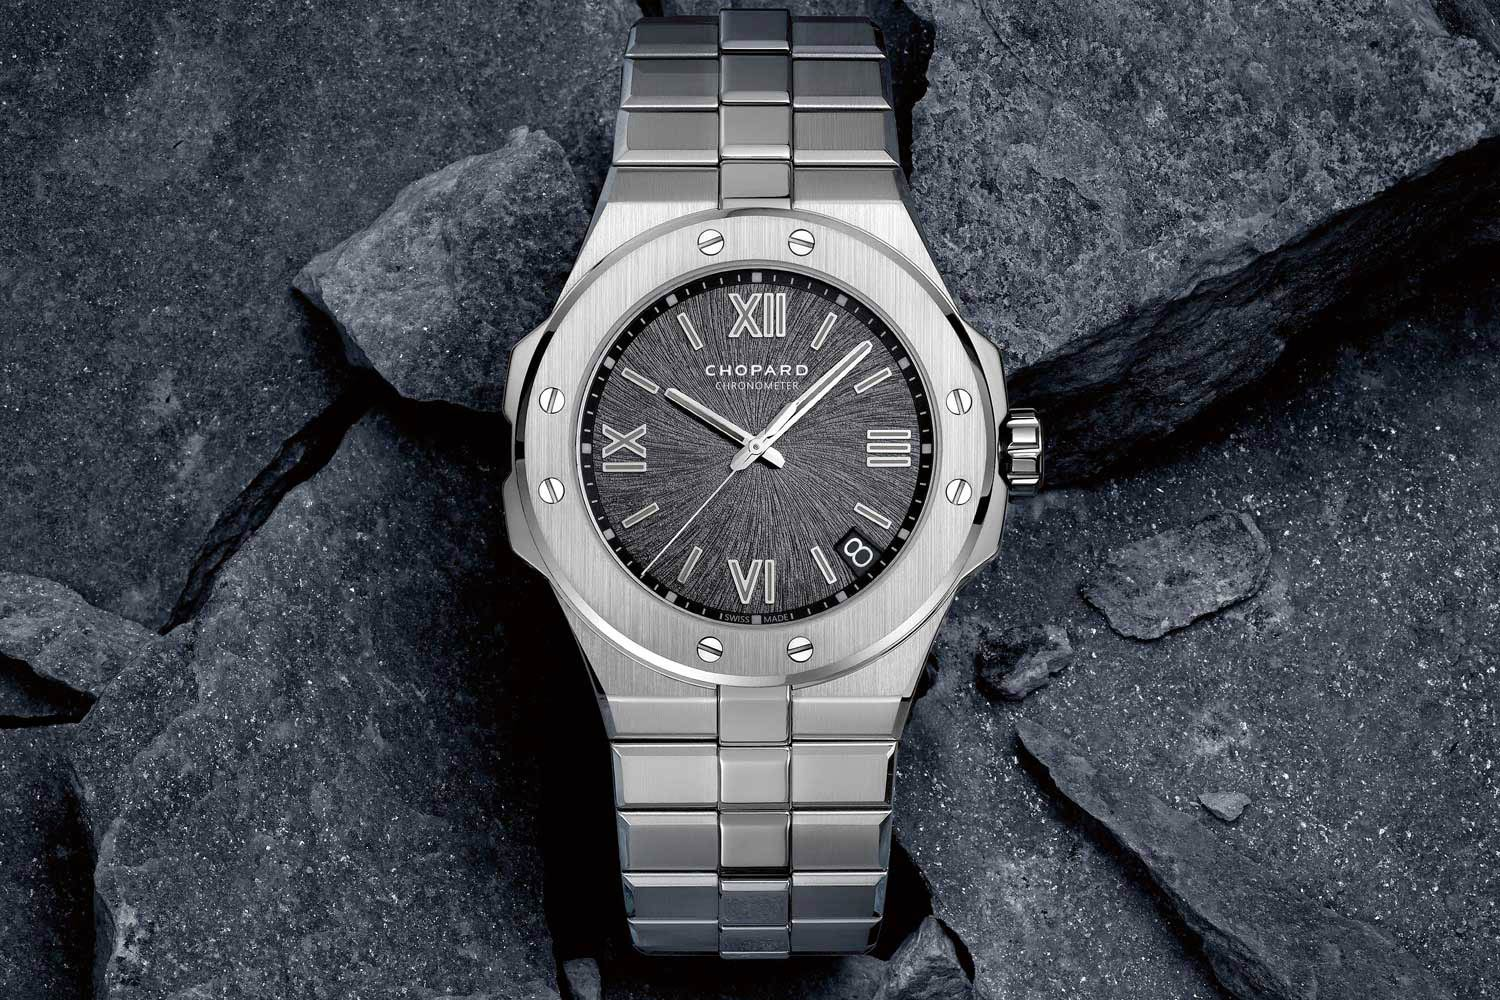 The first Alpine Eagle unveiled in 2019. With two screws at each compass point, visible ears and an integrated bracelet, the Alpine Eagle may evoke some association with other integrated bracelet watches, but it has a contemporary feel all on its own, particularly with its modern fonts on the printed, textured dial